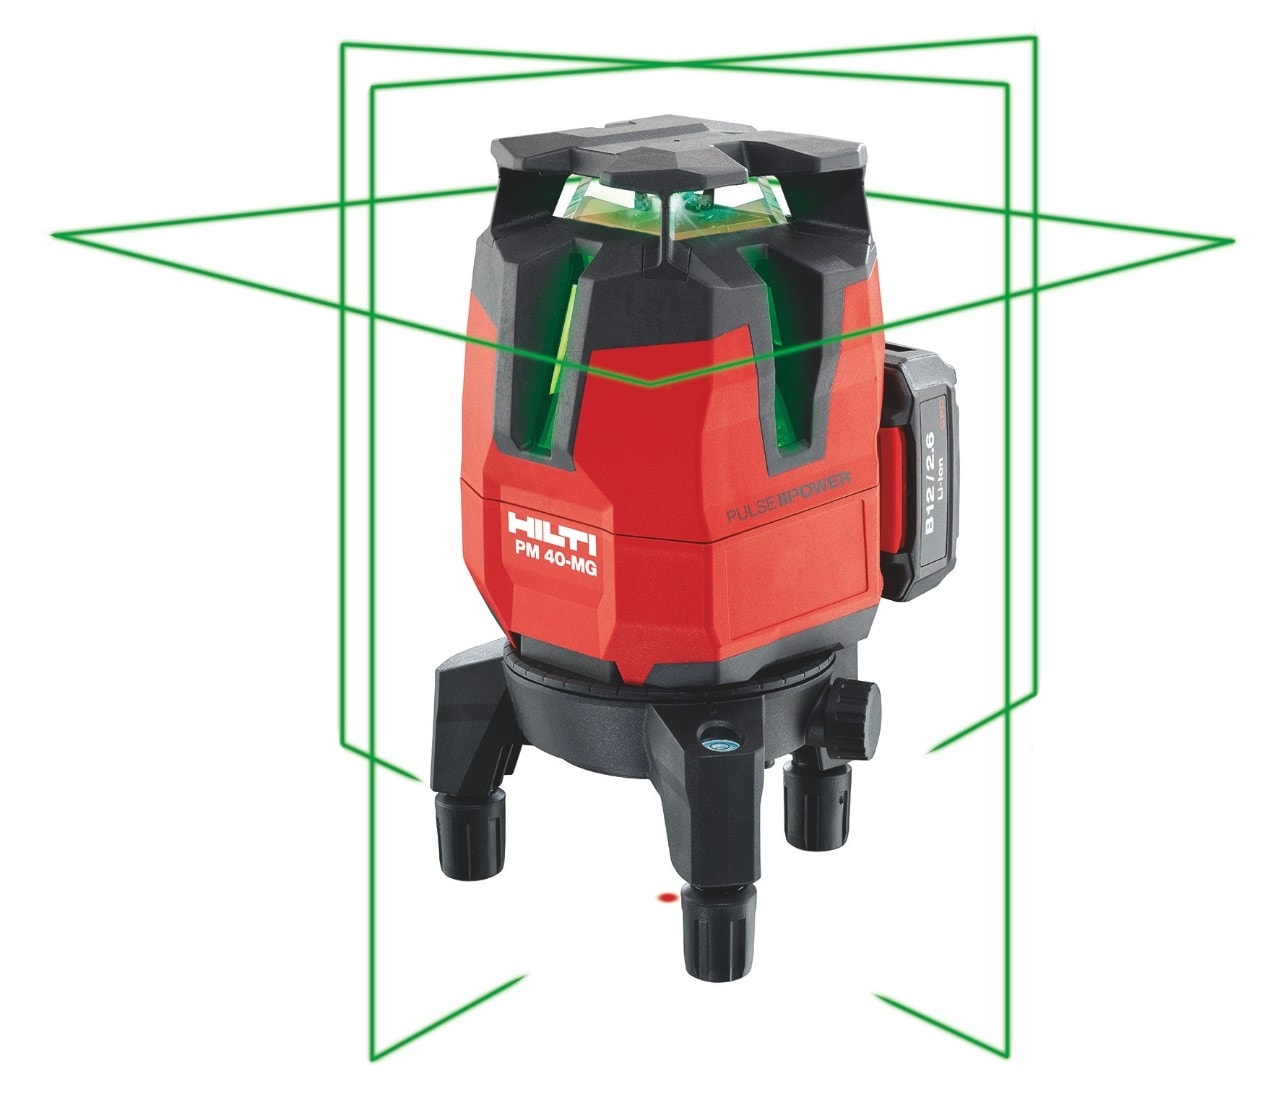 Hilti PM 40-MG green beam multi-line laser with four vertical lines and one 360° line